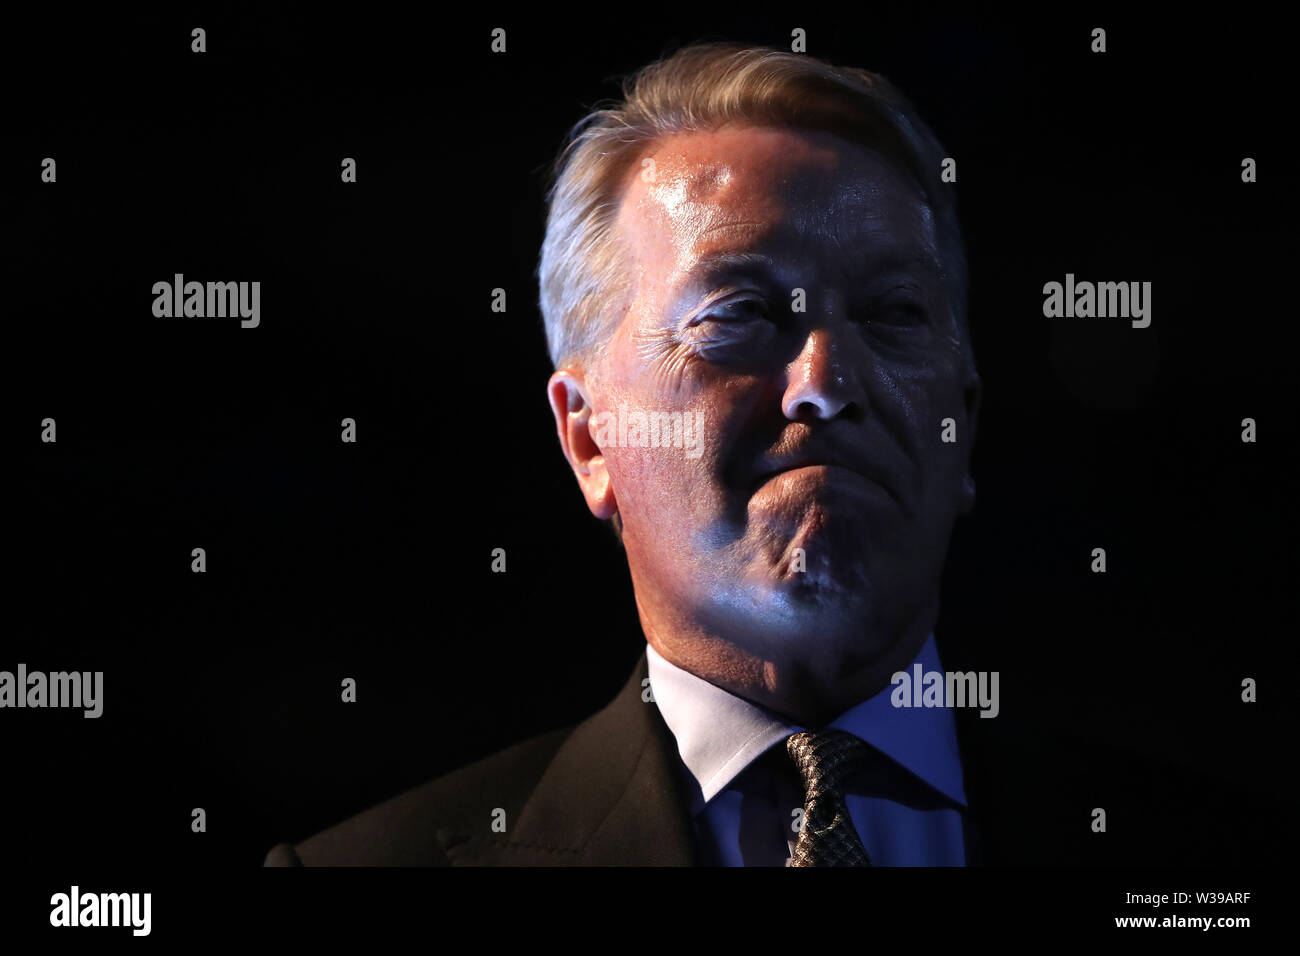 Frank Warren of Queensberry promotions at the O2 Arena, London. - Stock Image